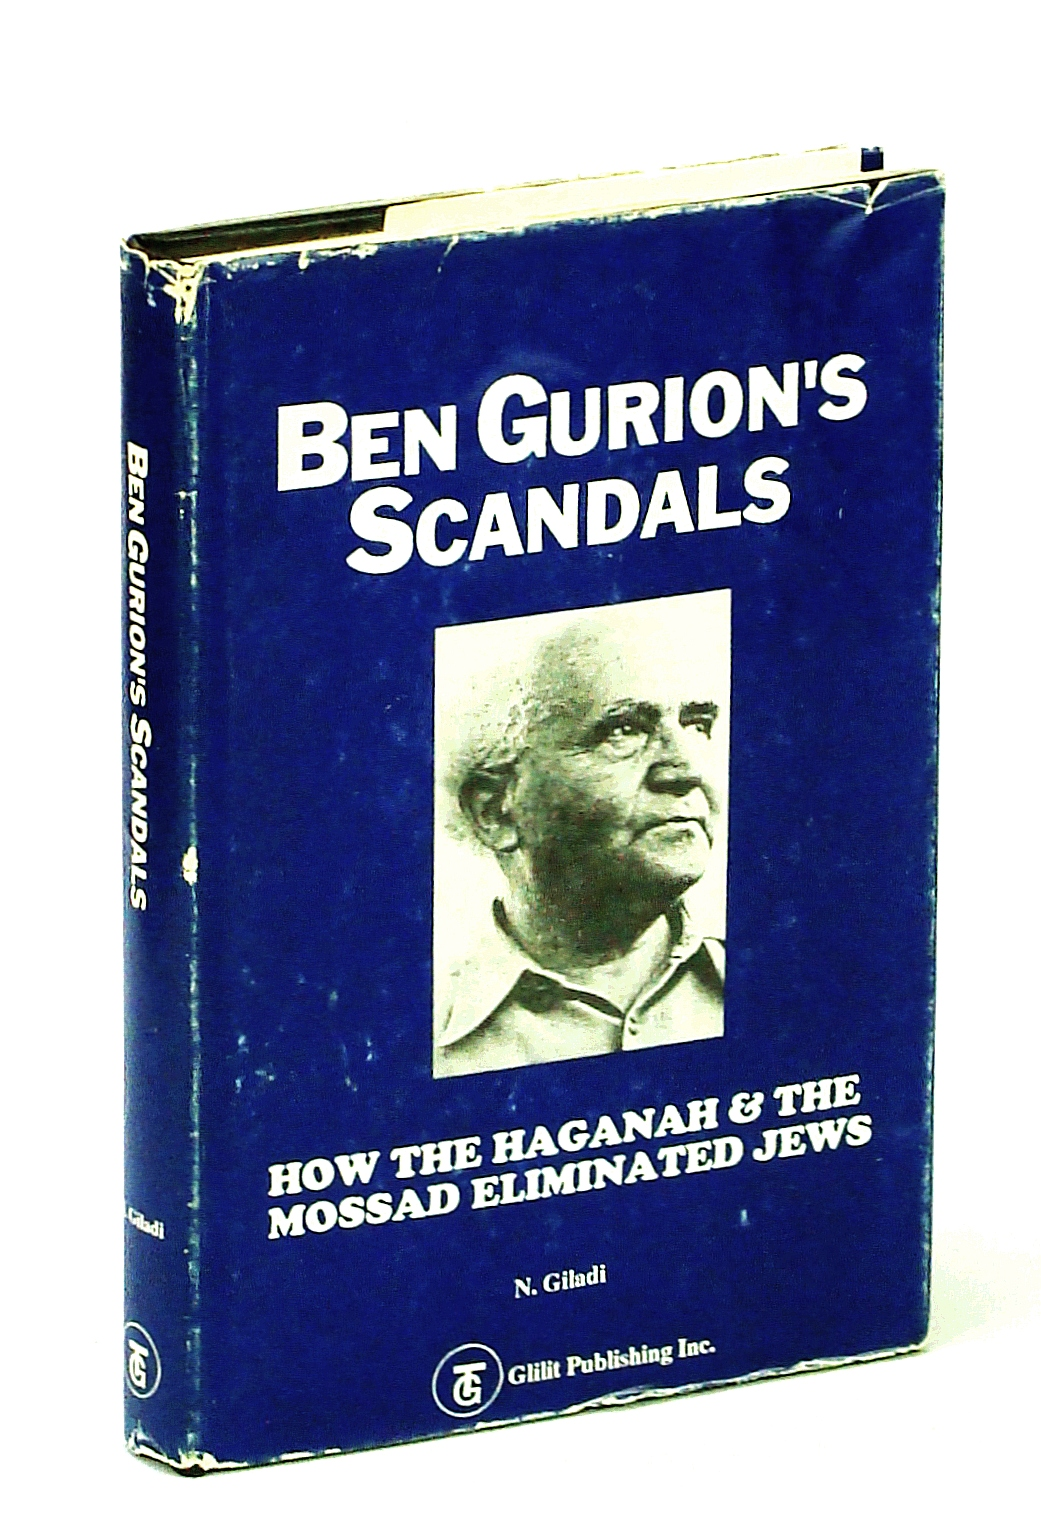 Image for Ben Gurion's Scandals: How the Haganah and the Mossad Eliminated Jews